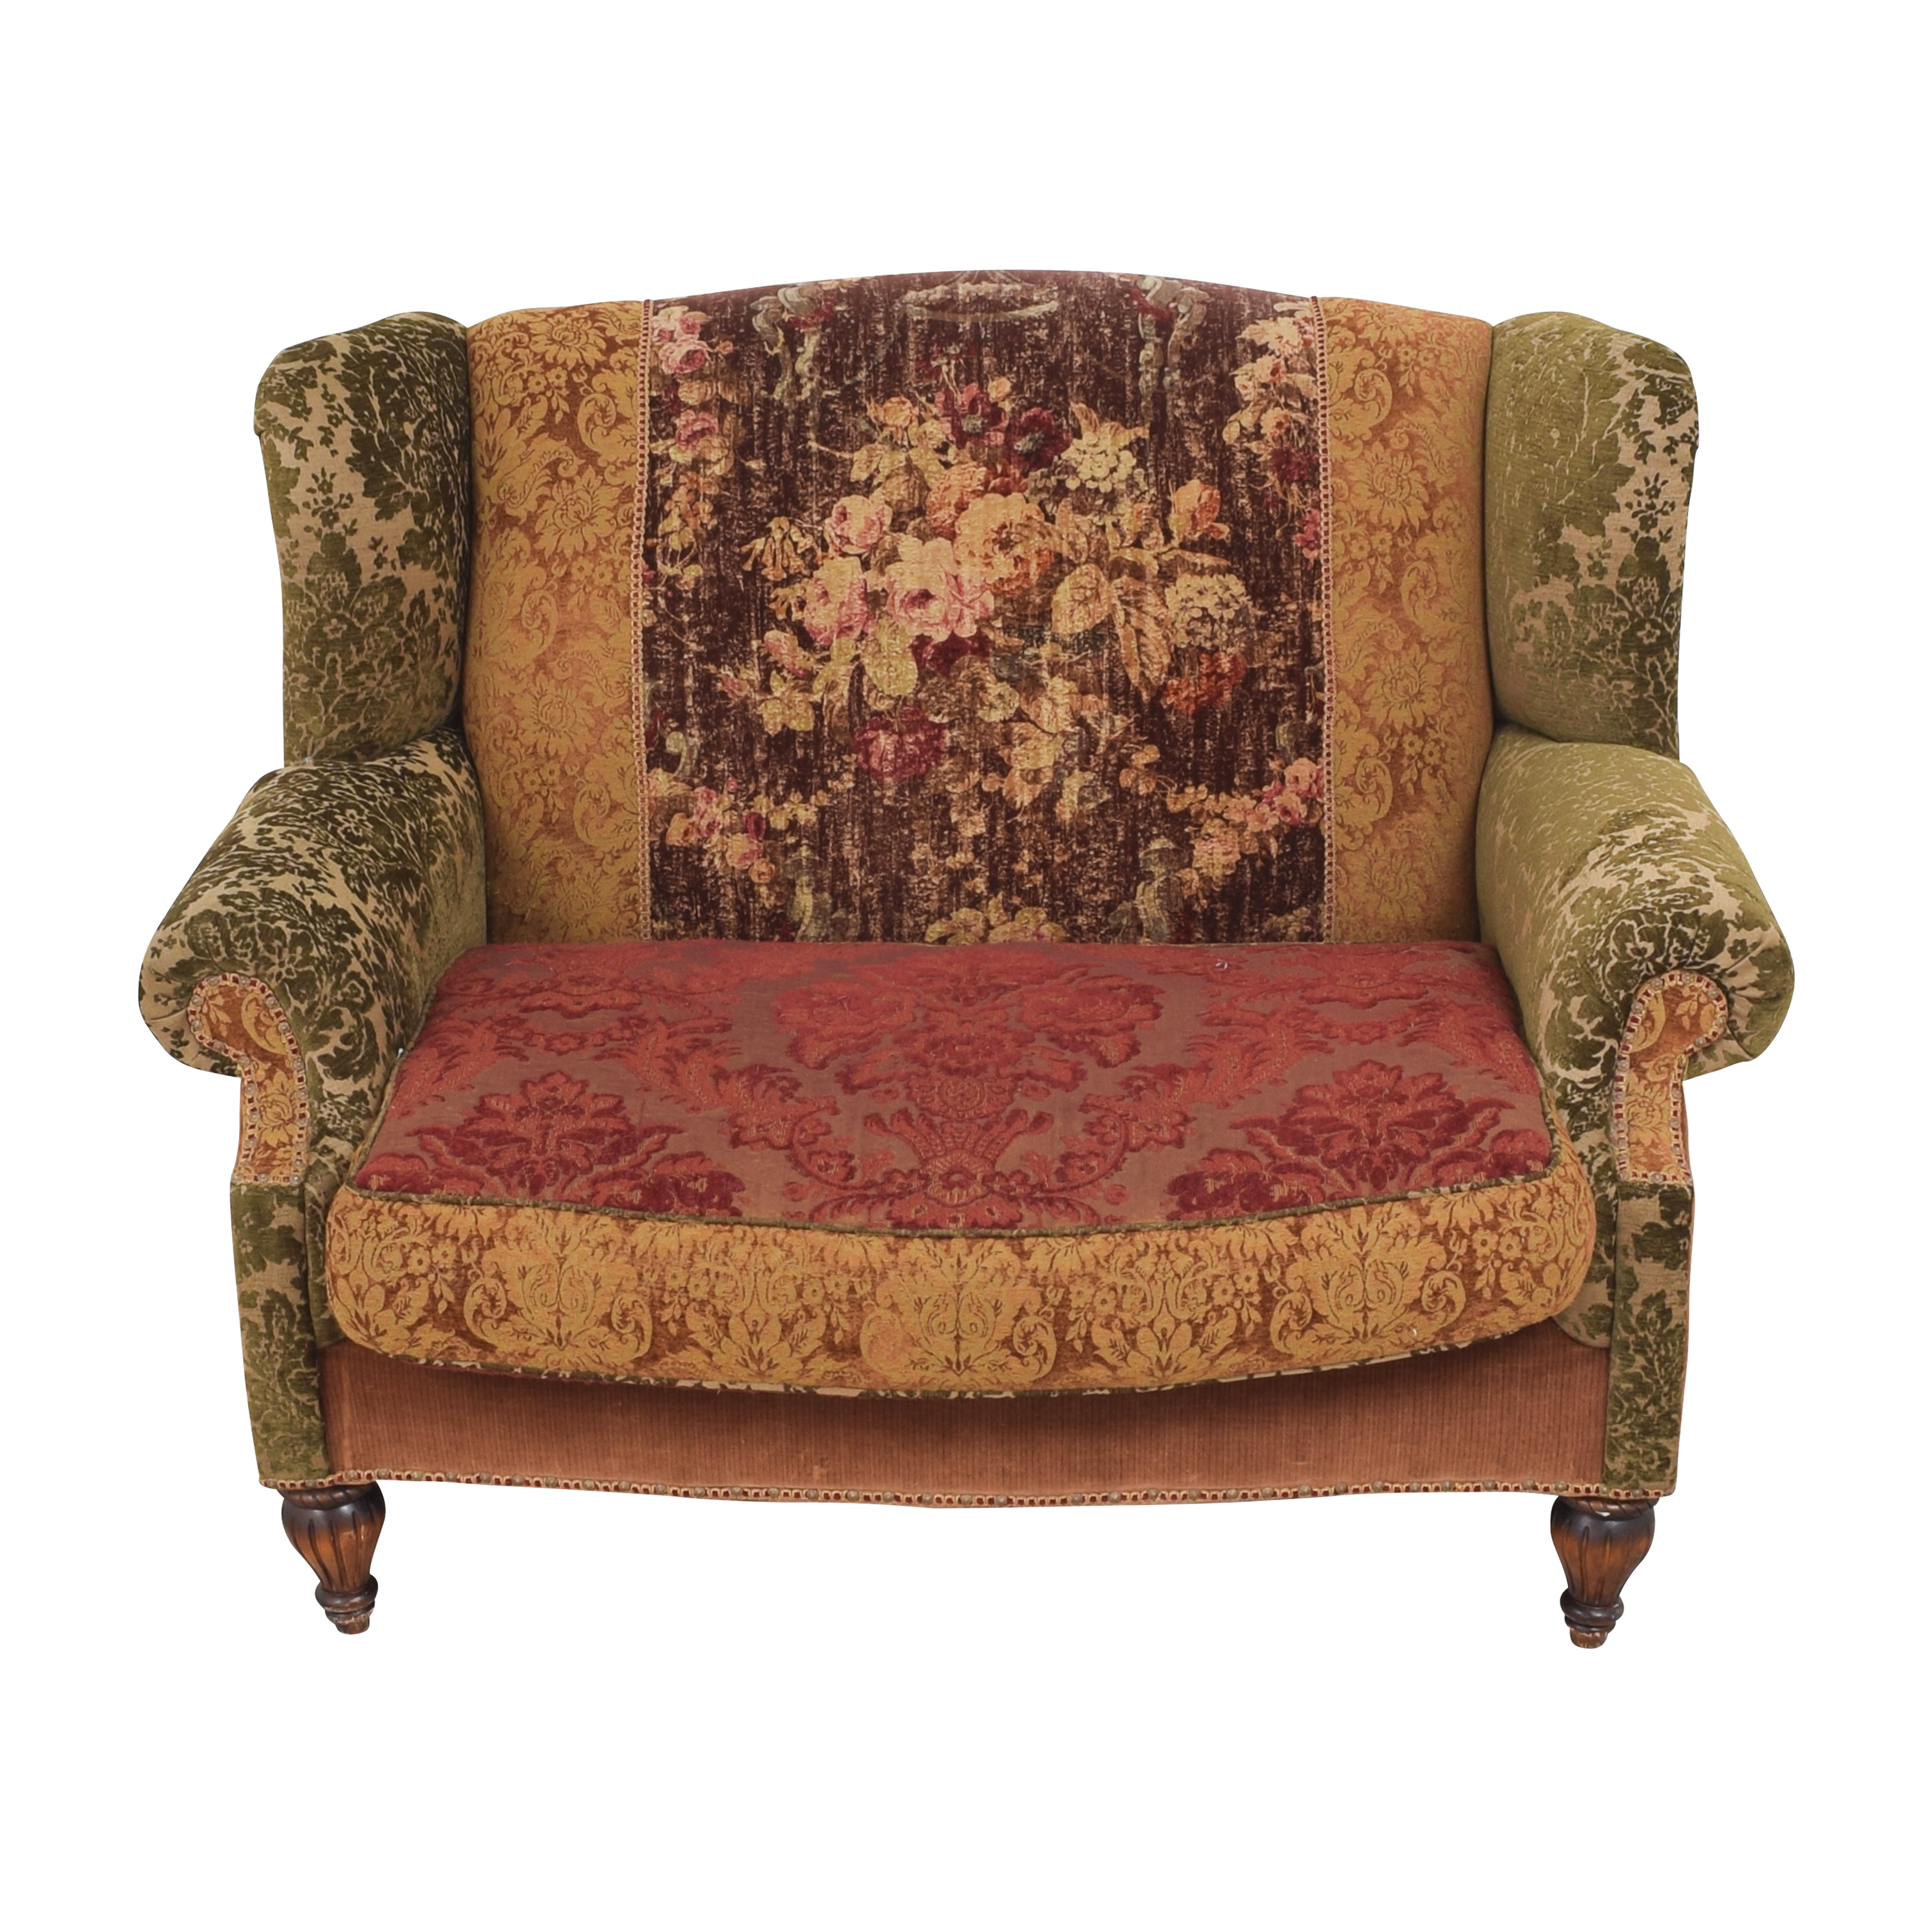 buy Domain Home Domain Home Victoria Settee online